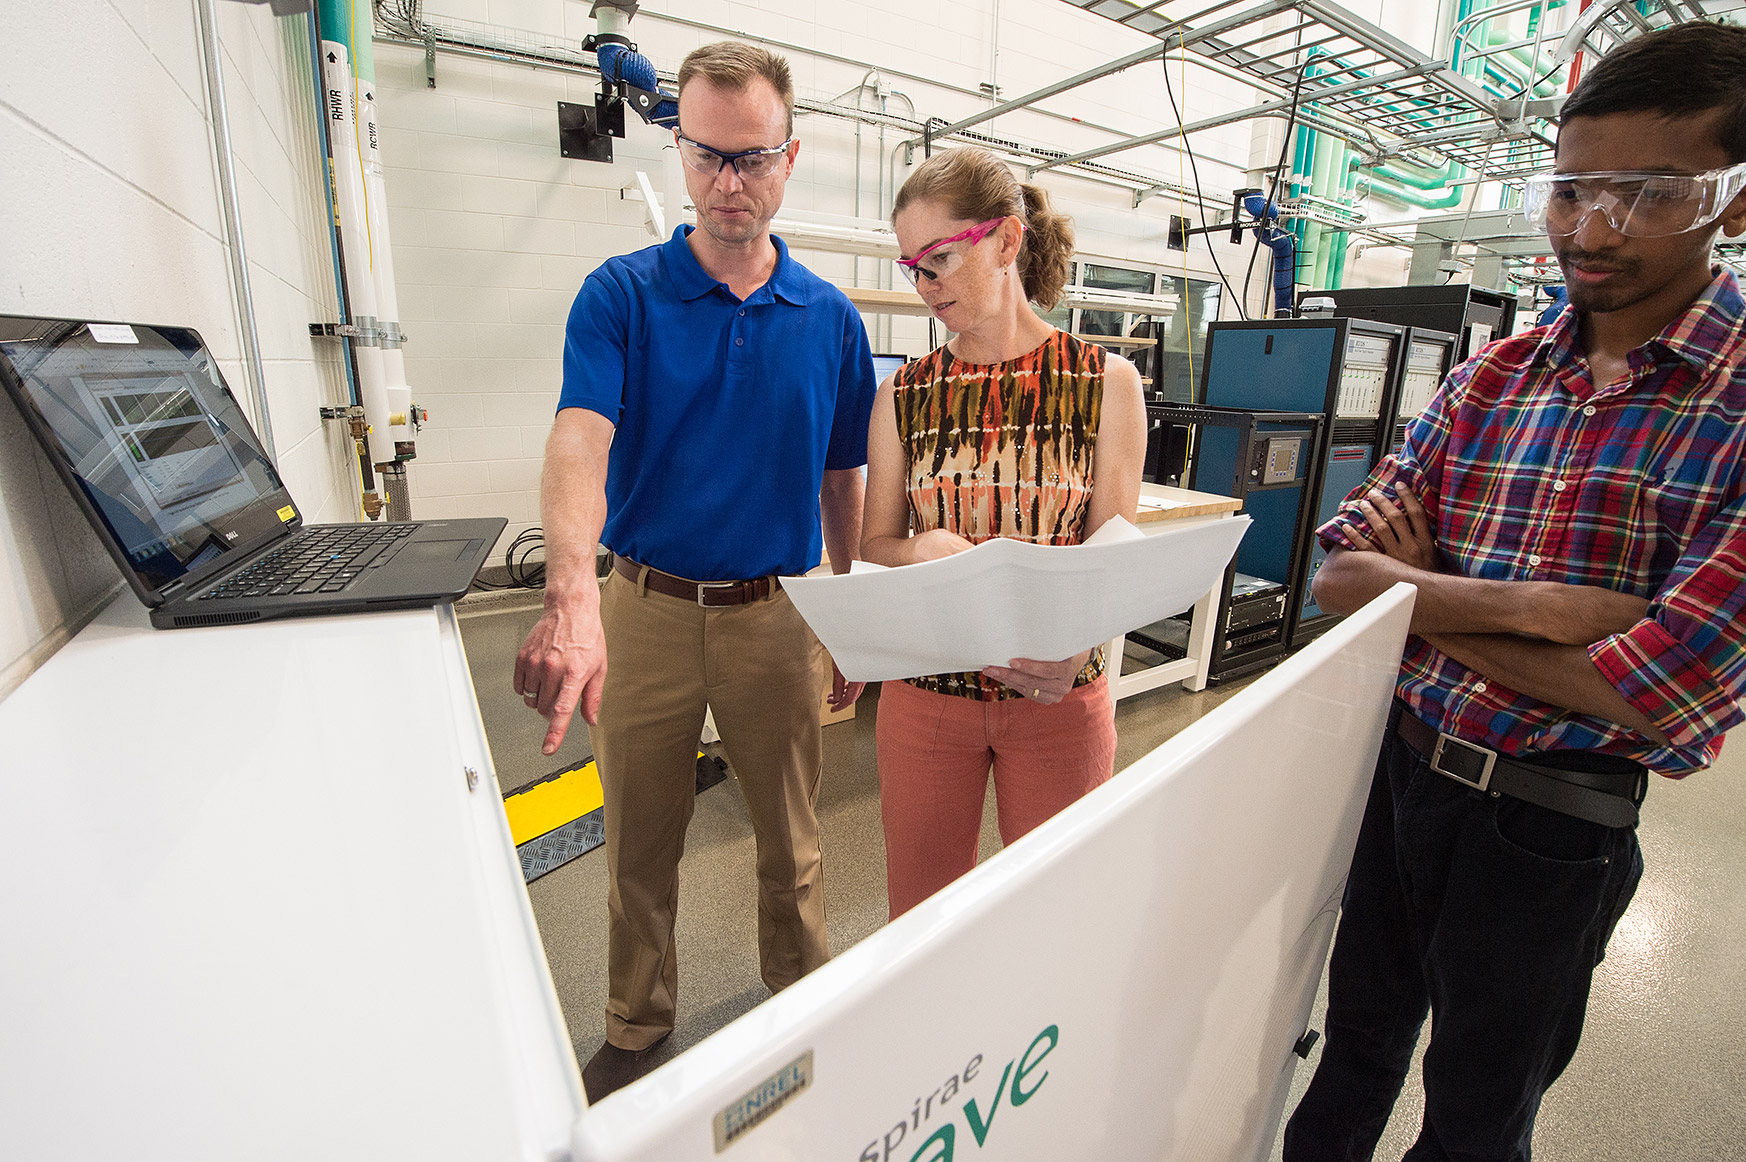 NREL researchers work to validate performance of Spirae-developed microgrid controller in partnership with EPRI in the ESIF.